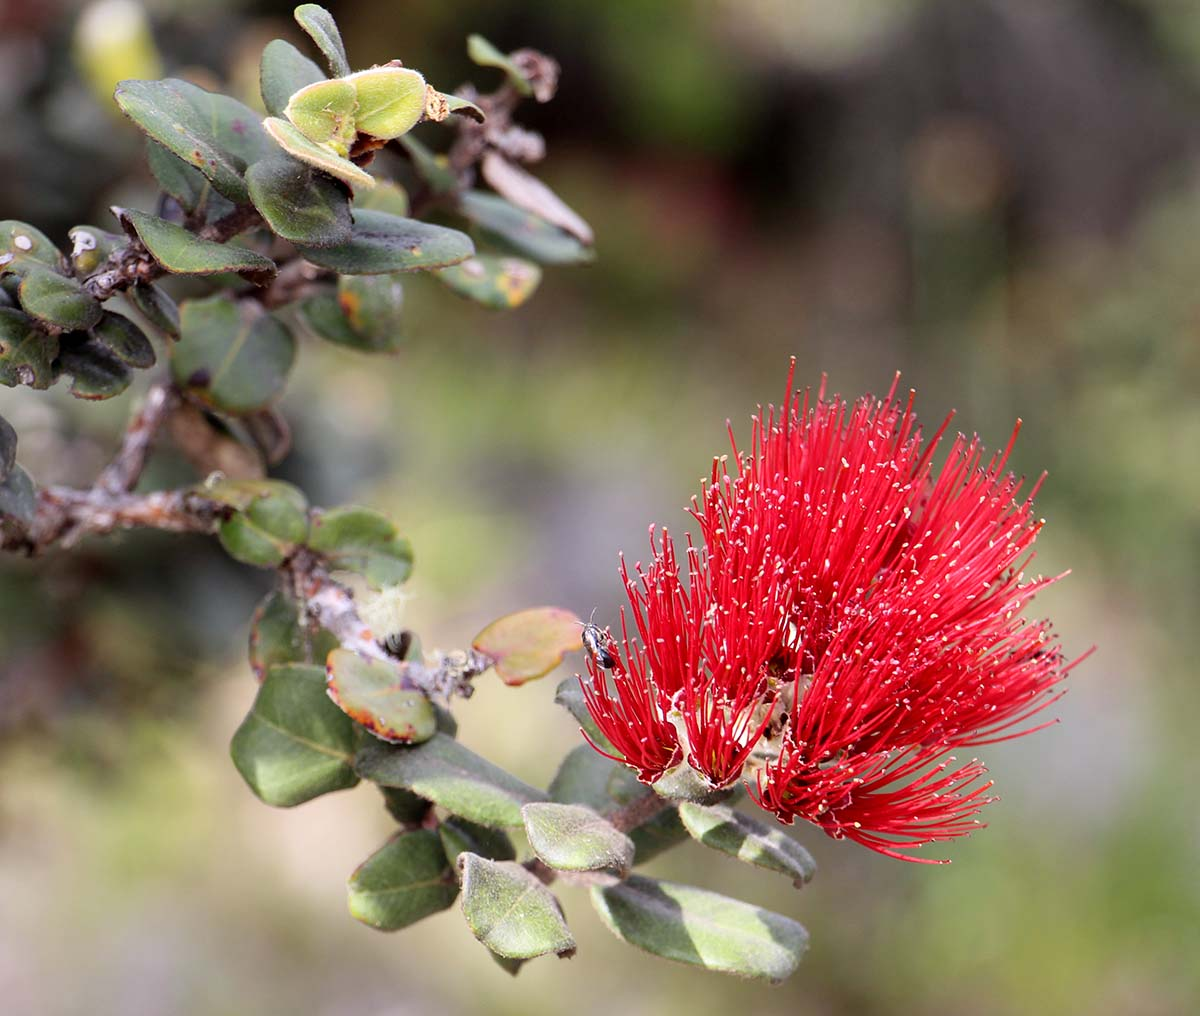 'Ōhi'a (ohia). Photo by J.B. Friday